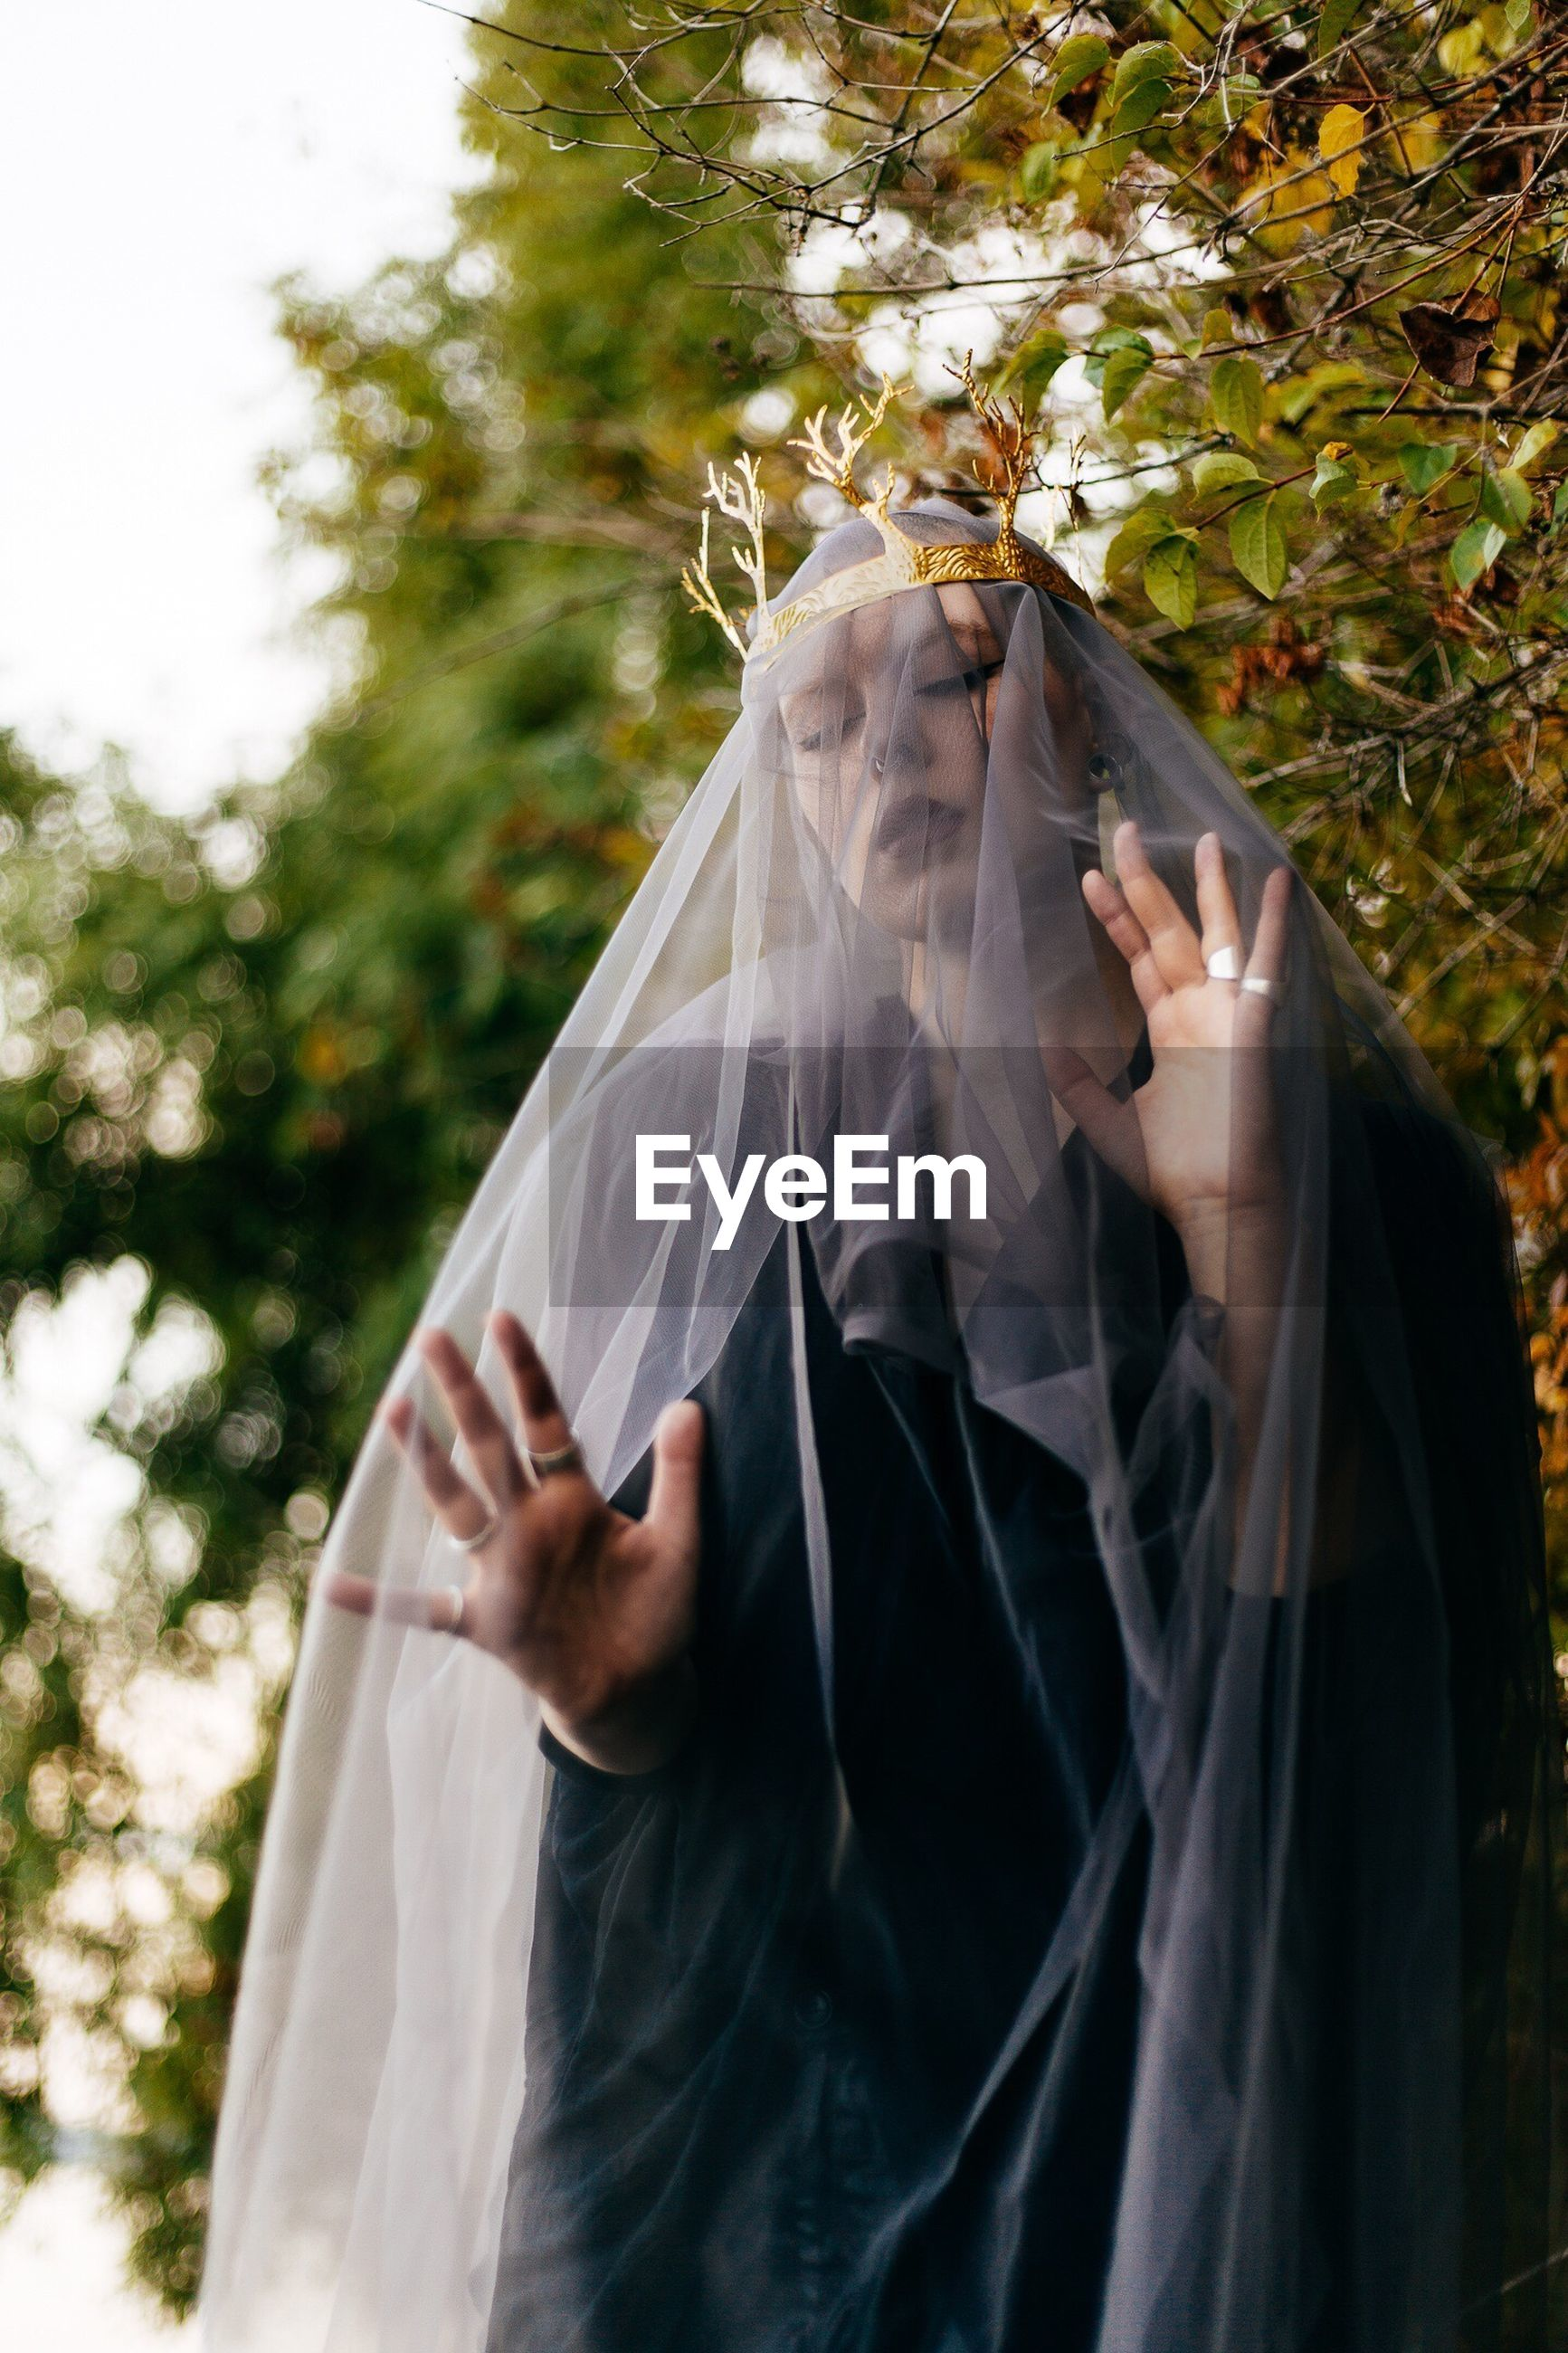 veil, wedding, bride, real people, women, wedding dress, one person, outdoors, day, holding, young adult, young women, lifestyles, tree, nature, human hand, close-up, people